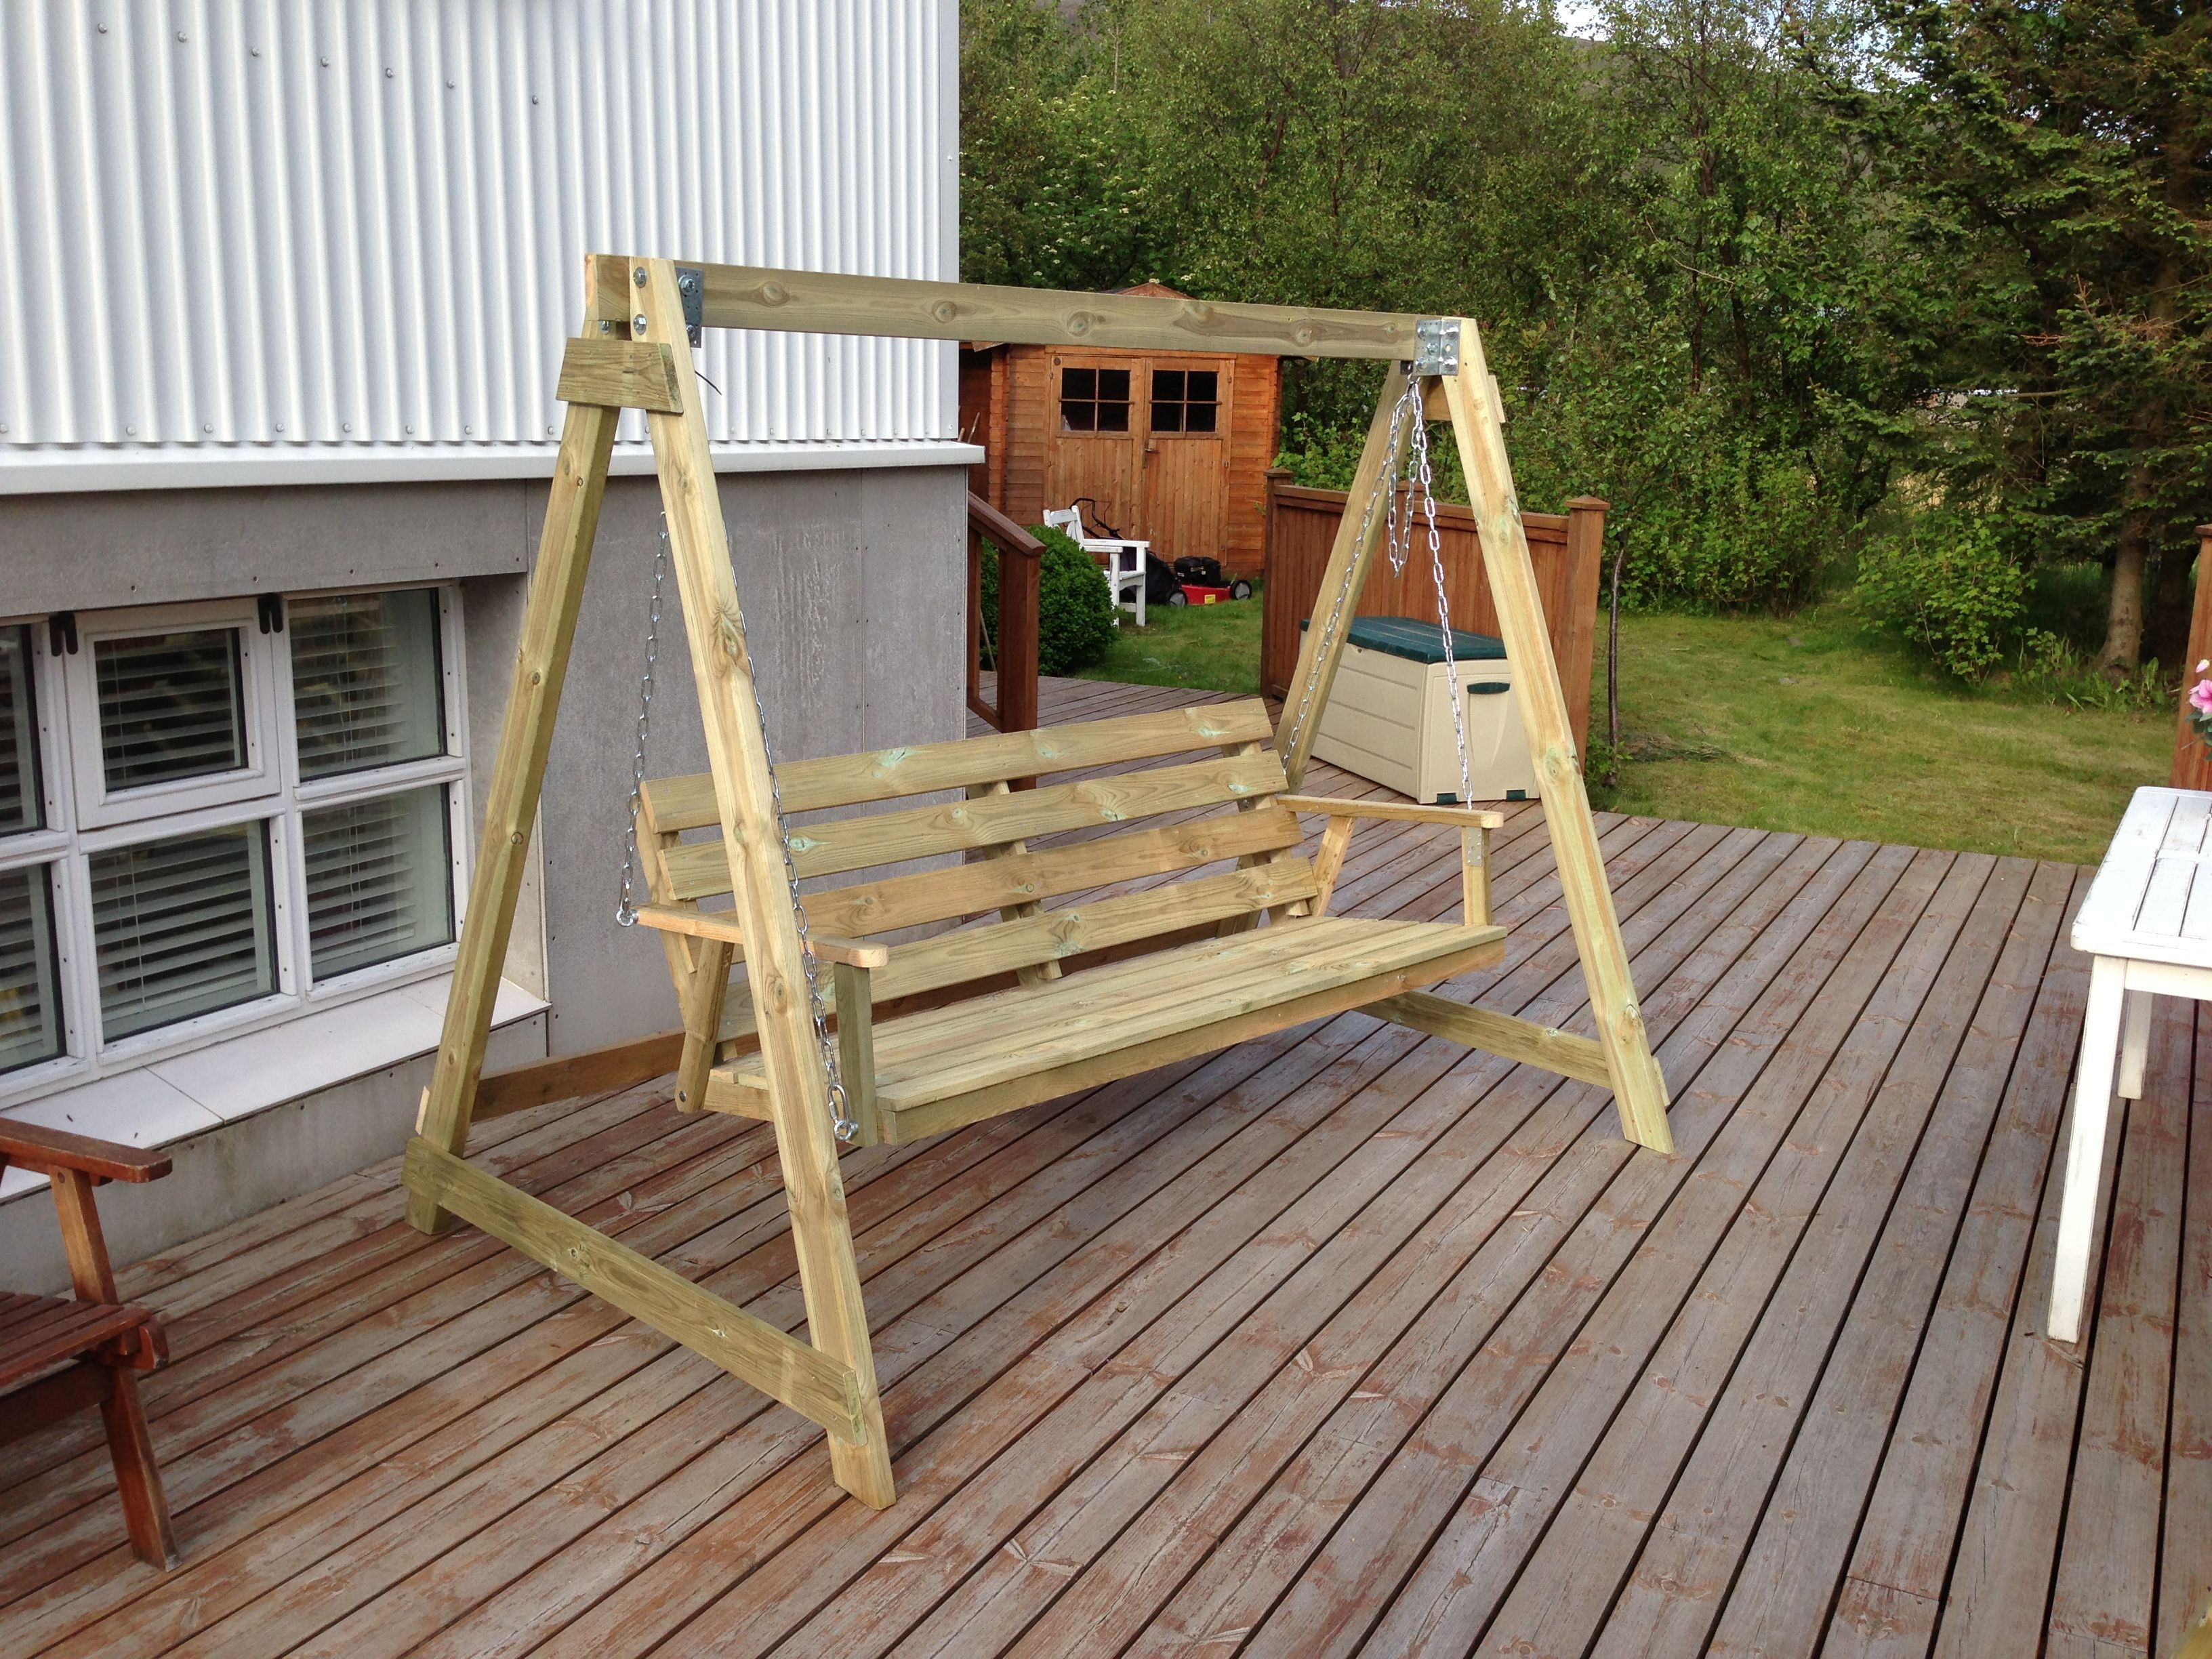 Pallet Patio Swing my diy projenct - porch swing | how to | pinterest | porch